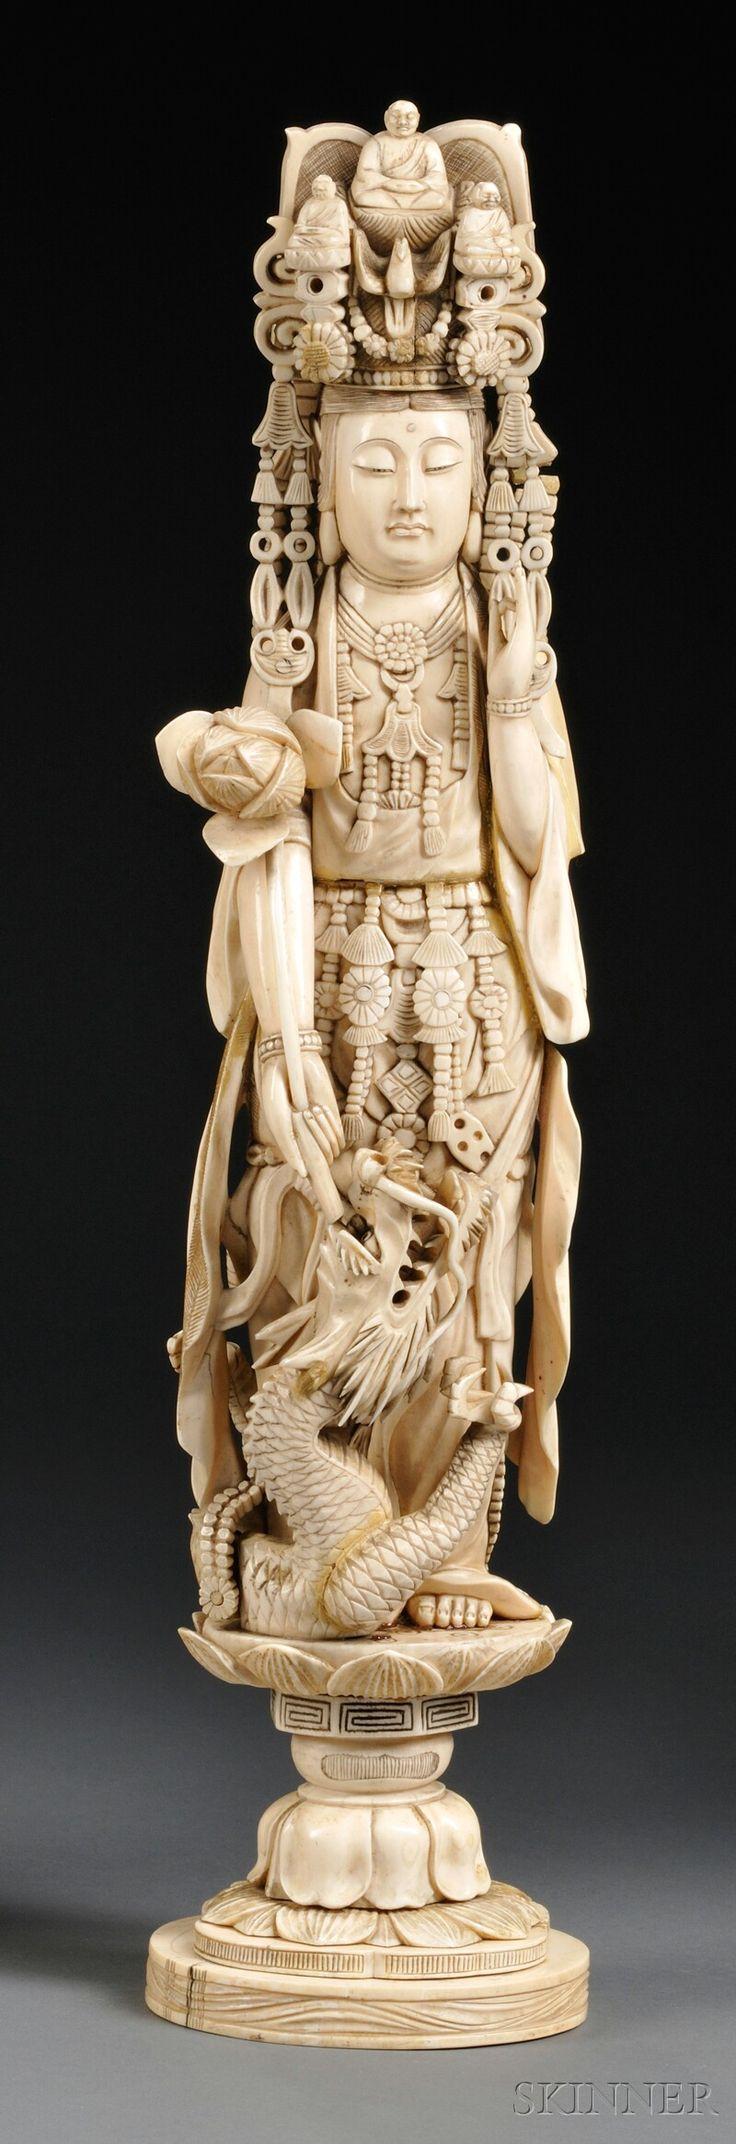 Ivory Carving of Kuan Yin with her left hand in the mudra of appeasement position, right hand holding a lotus blossom, a swirling dragon at feet, standing on a lotus base. China 19th Century